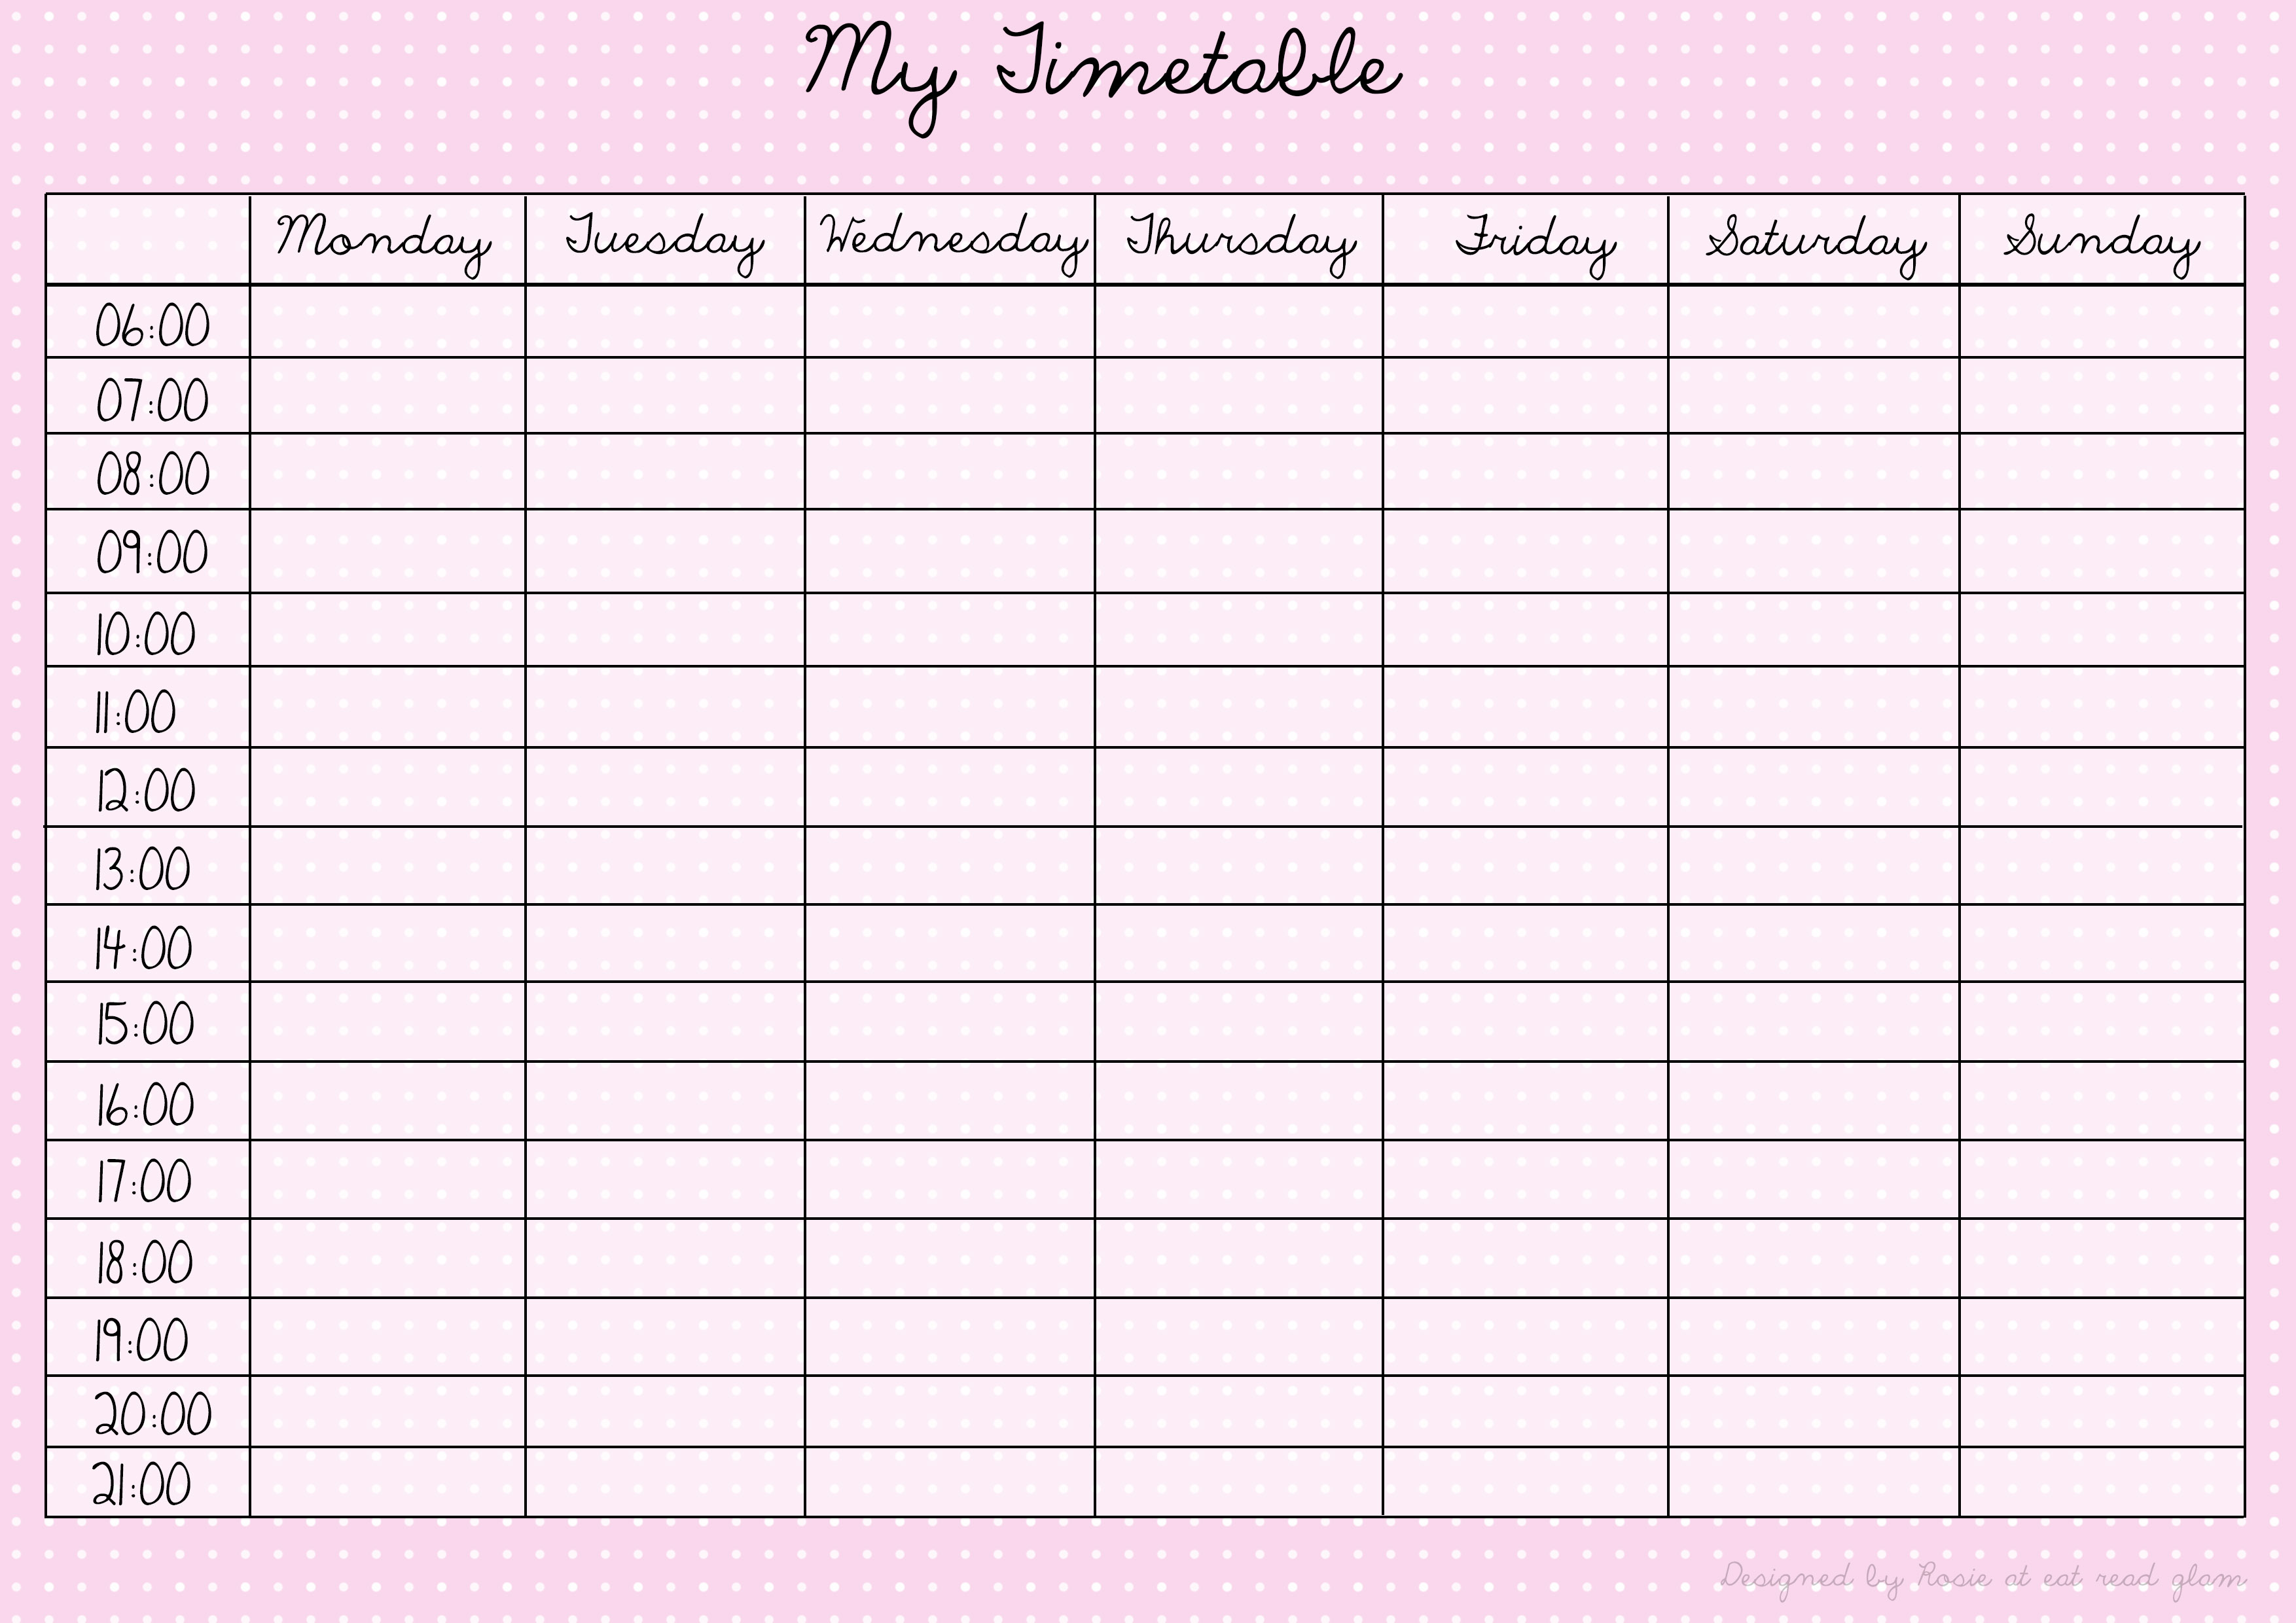 printable revision timetable